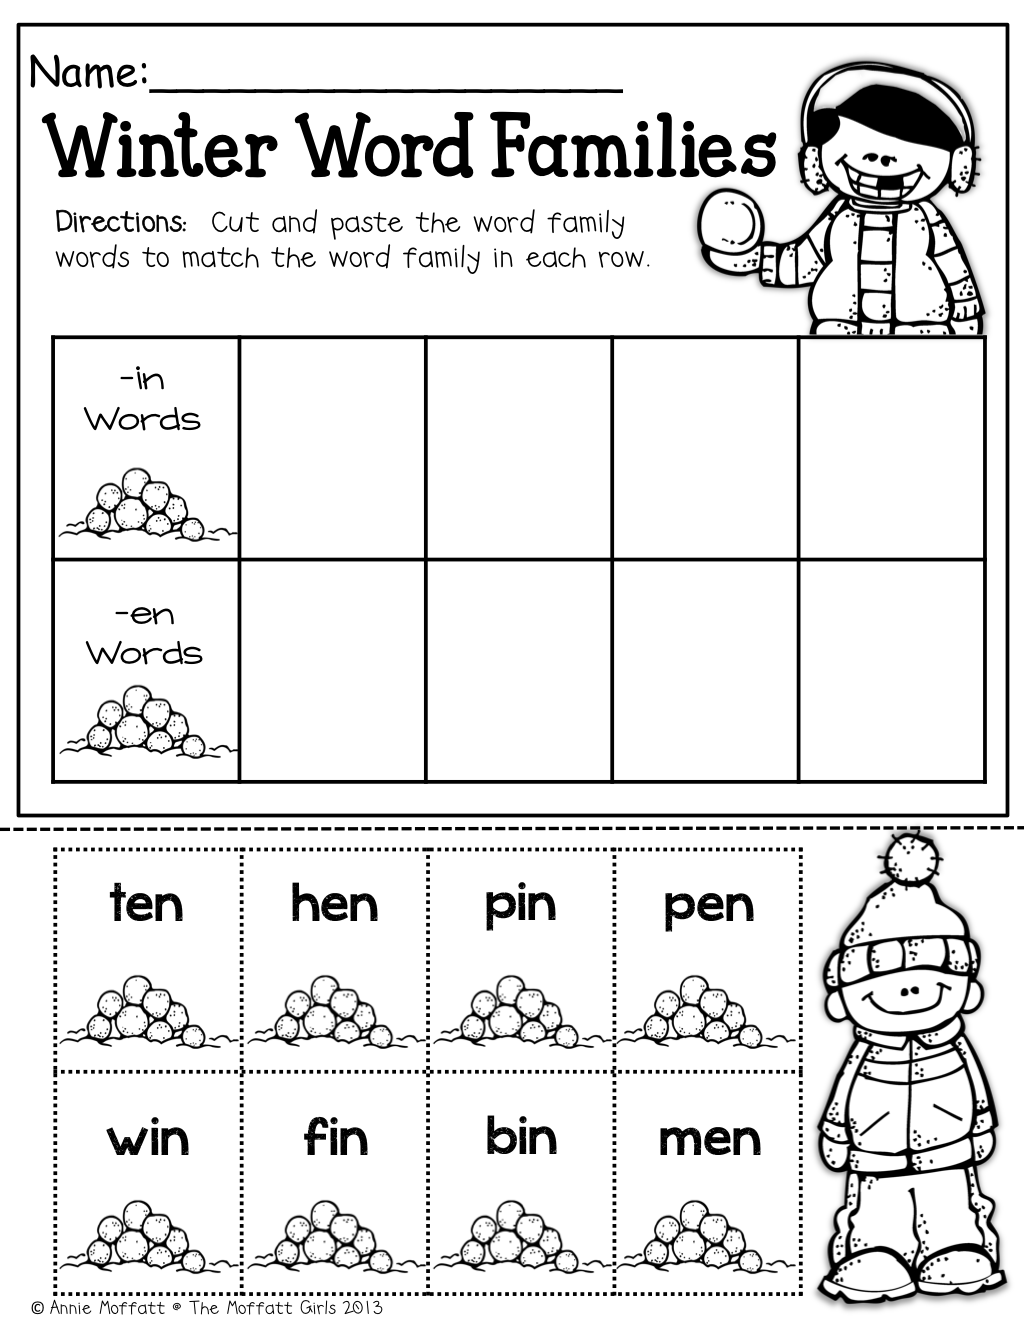 winter word families great way to practice simple cvc words cut and paste esl saturday. Black Bedroom Furniture Sets. Home Design Ideas